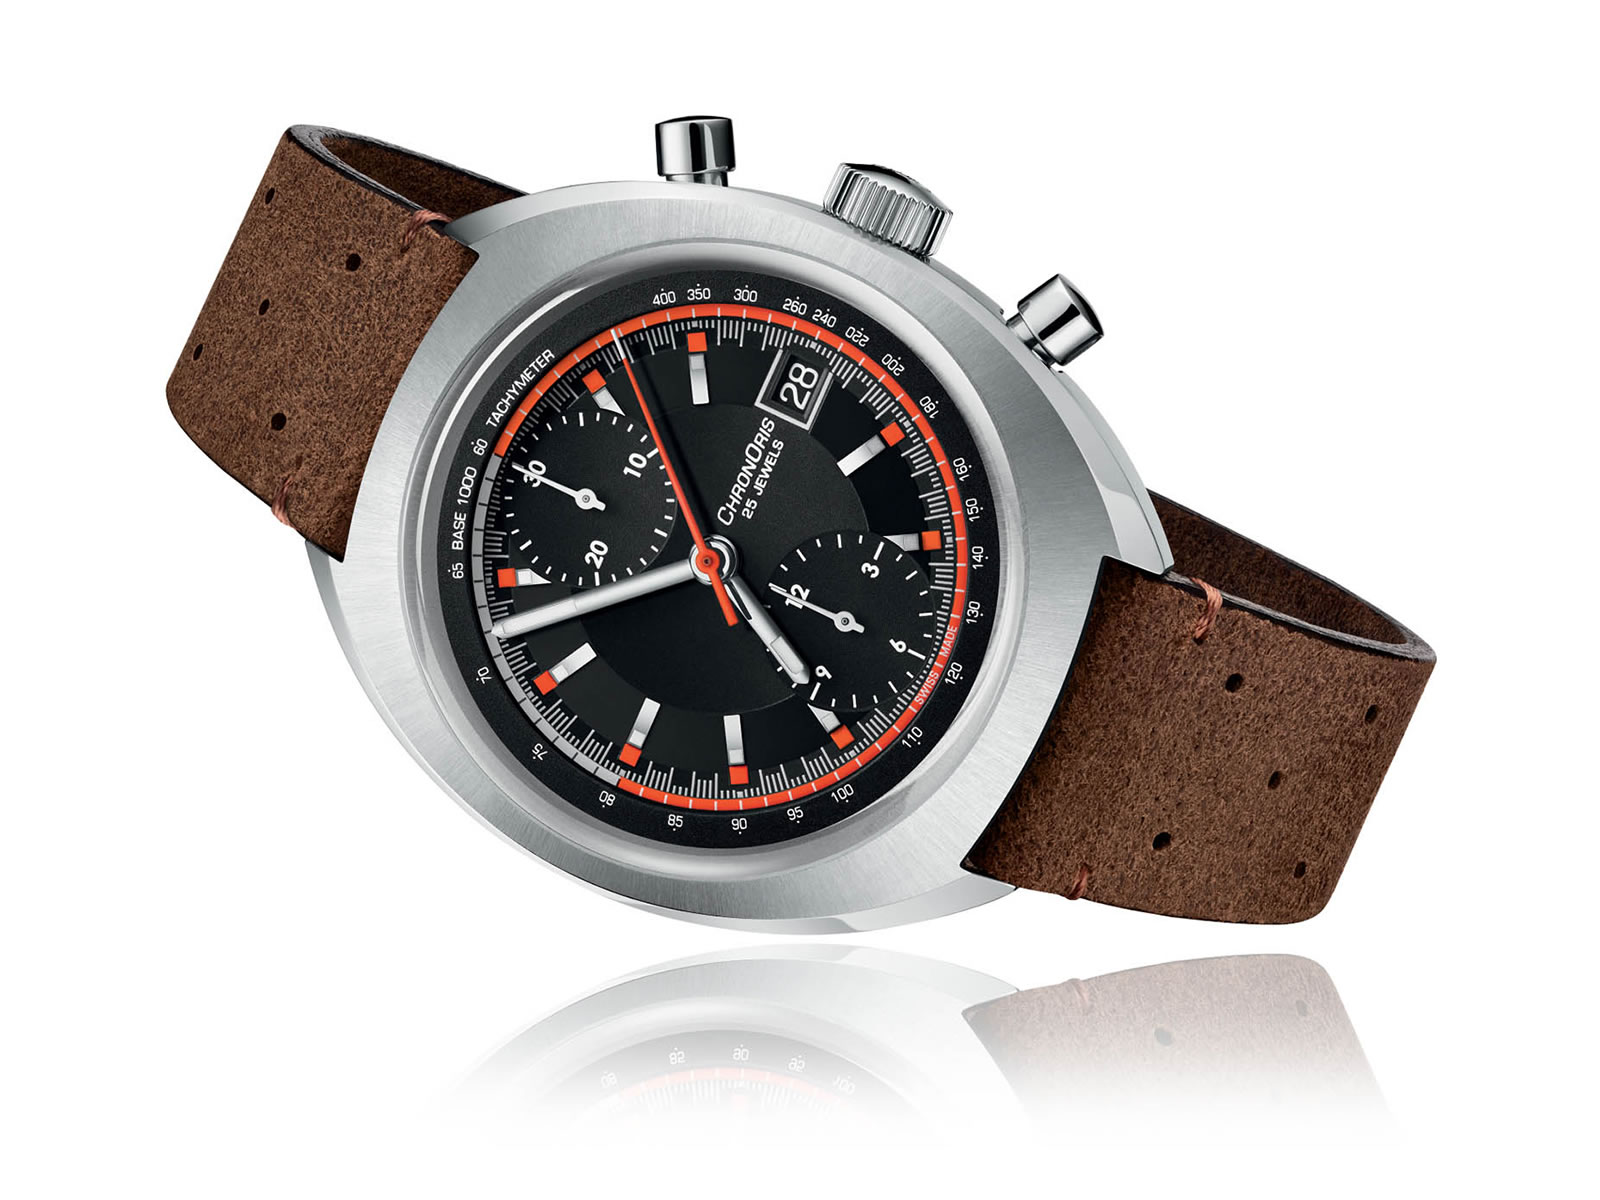 01-673-7739-4034-set-ls-oris-chronoris-limited-edition-2-.jpg